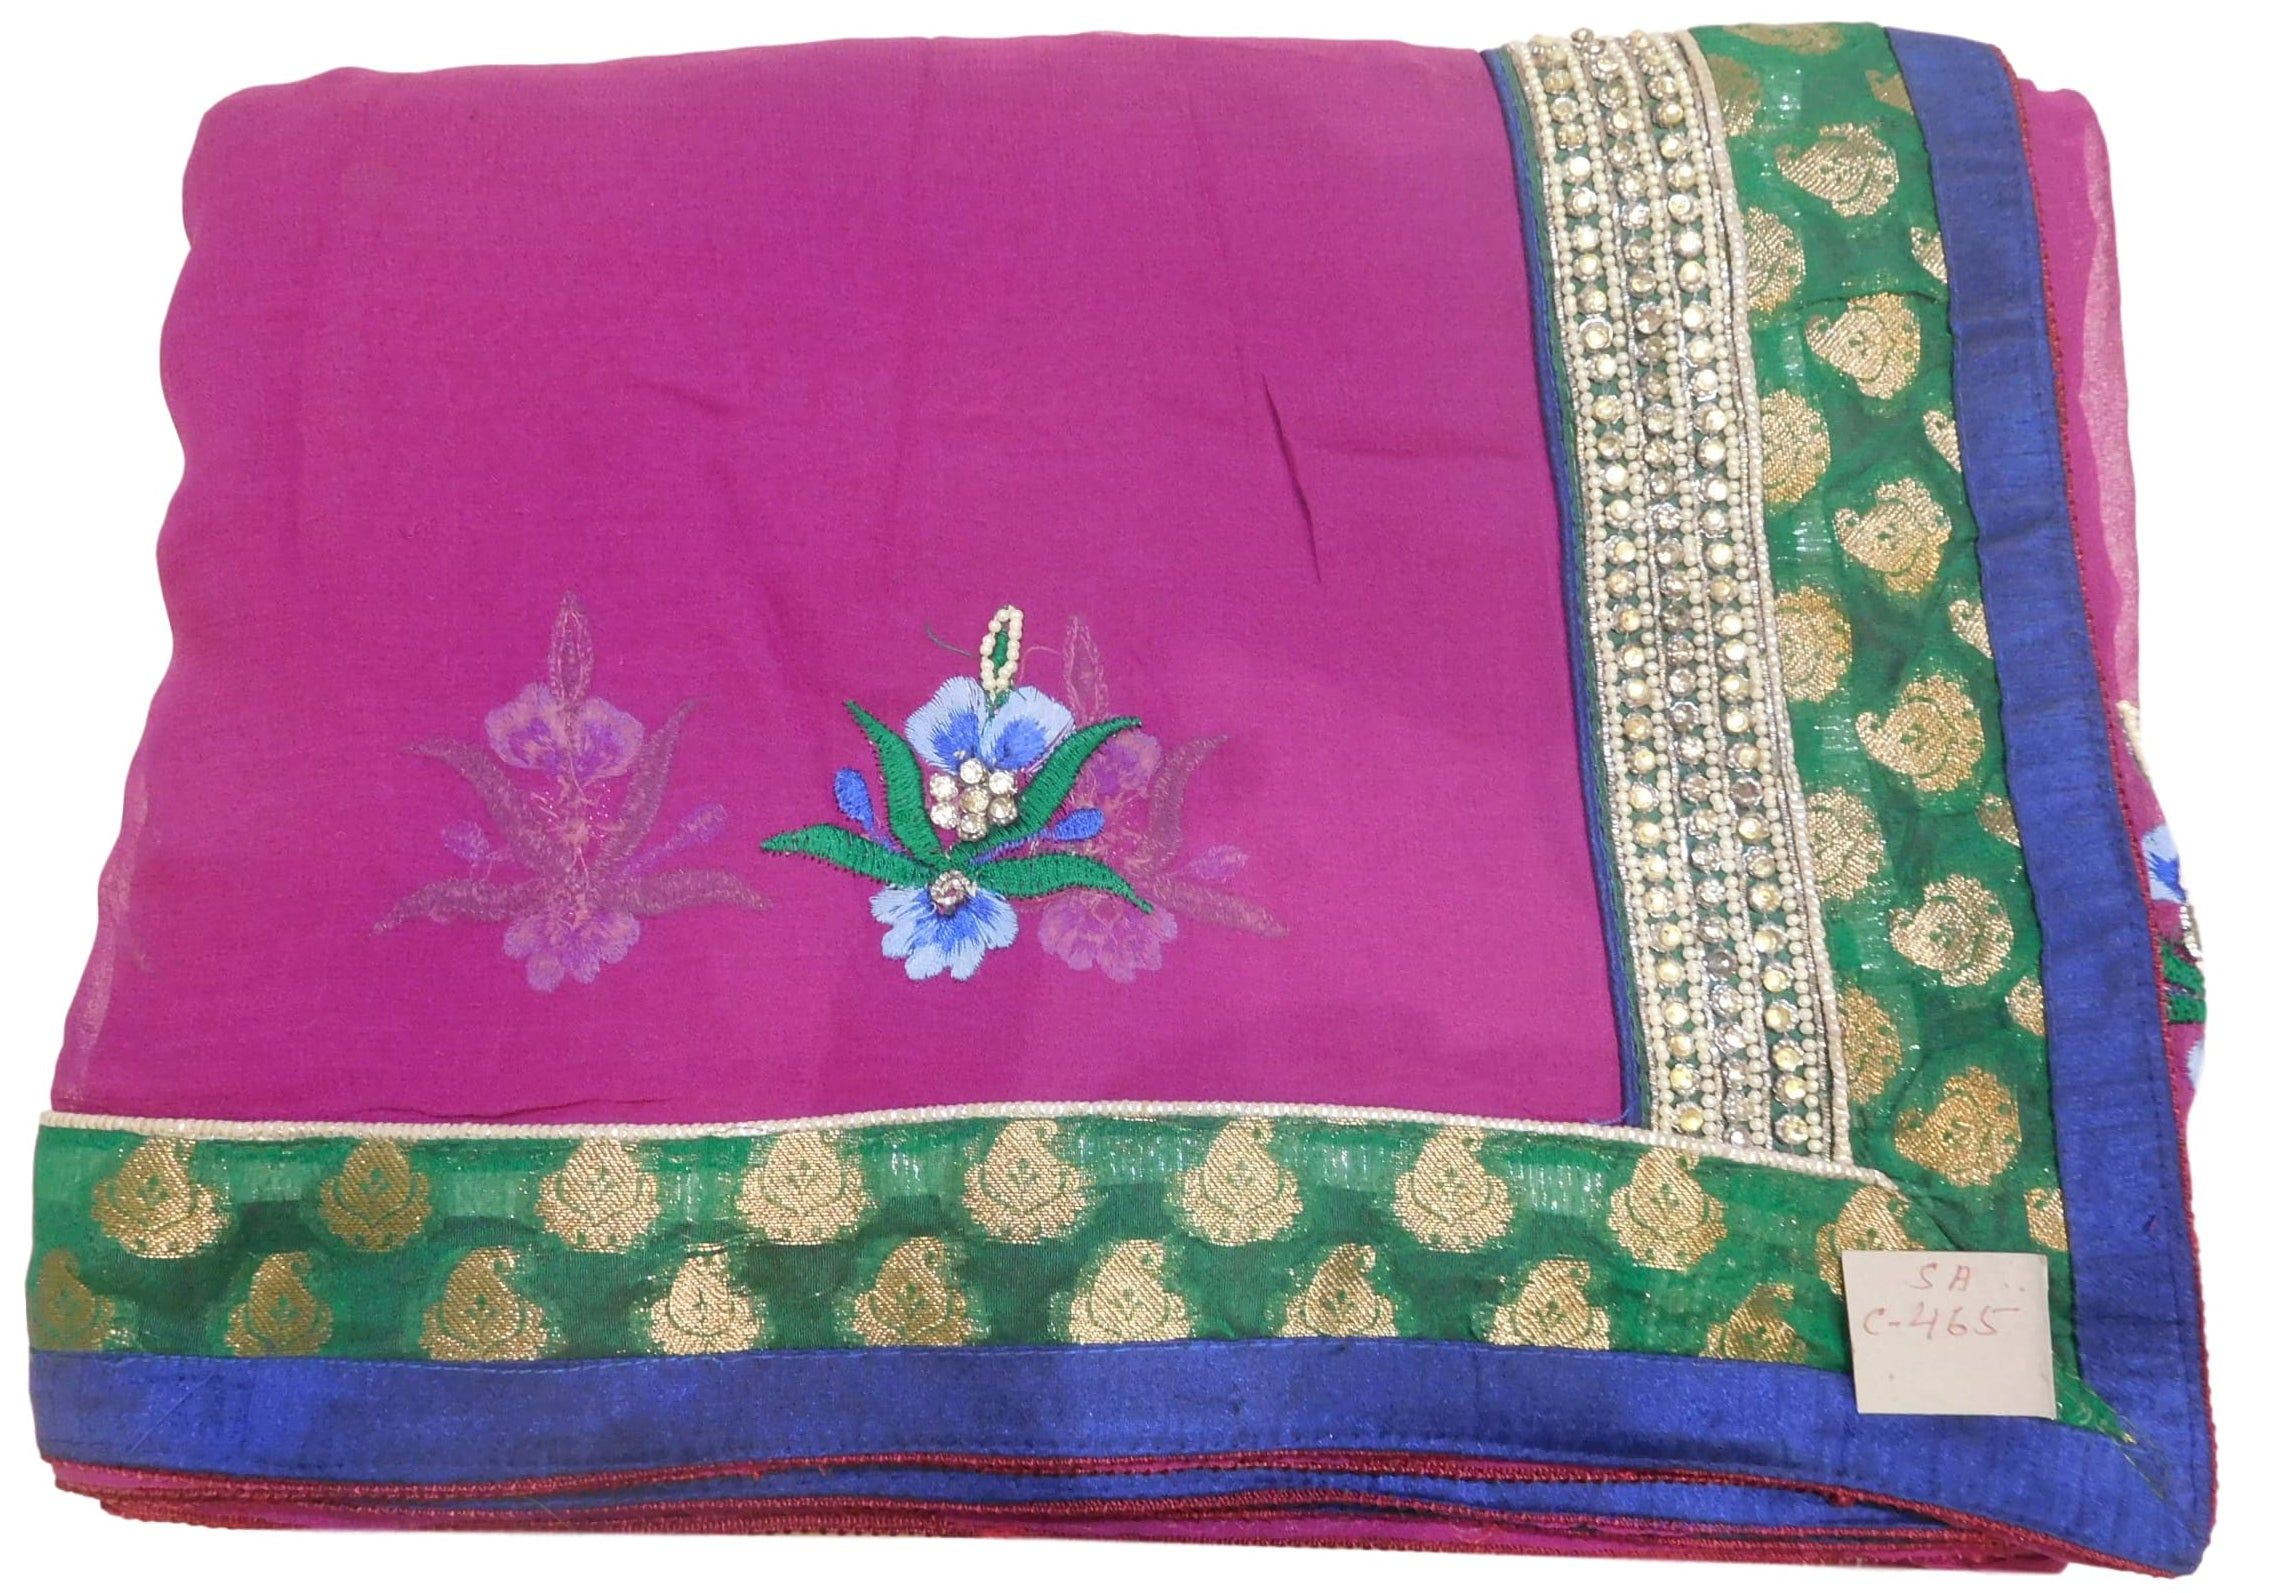 Wine Designer Georgette (Viscos) Hand Embroidery Zari Pearl Stone Thread Bullion Work Saree Sari